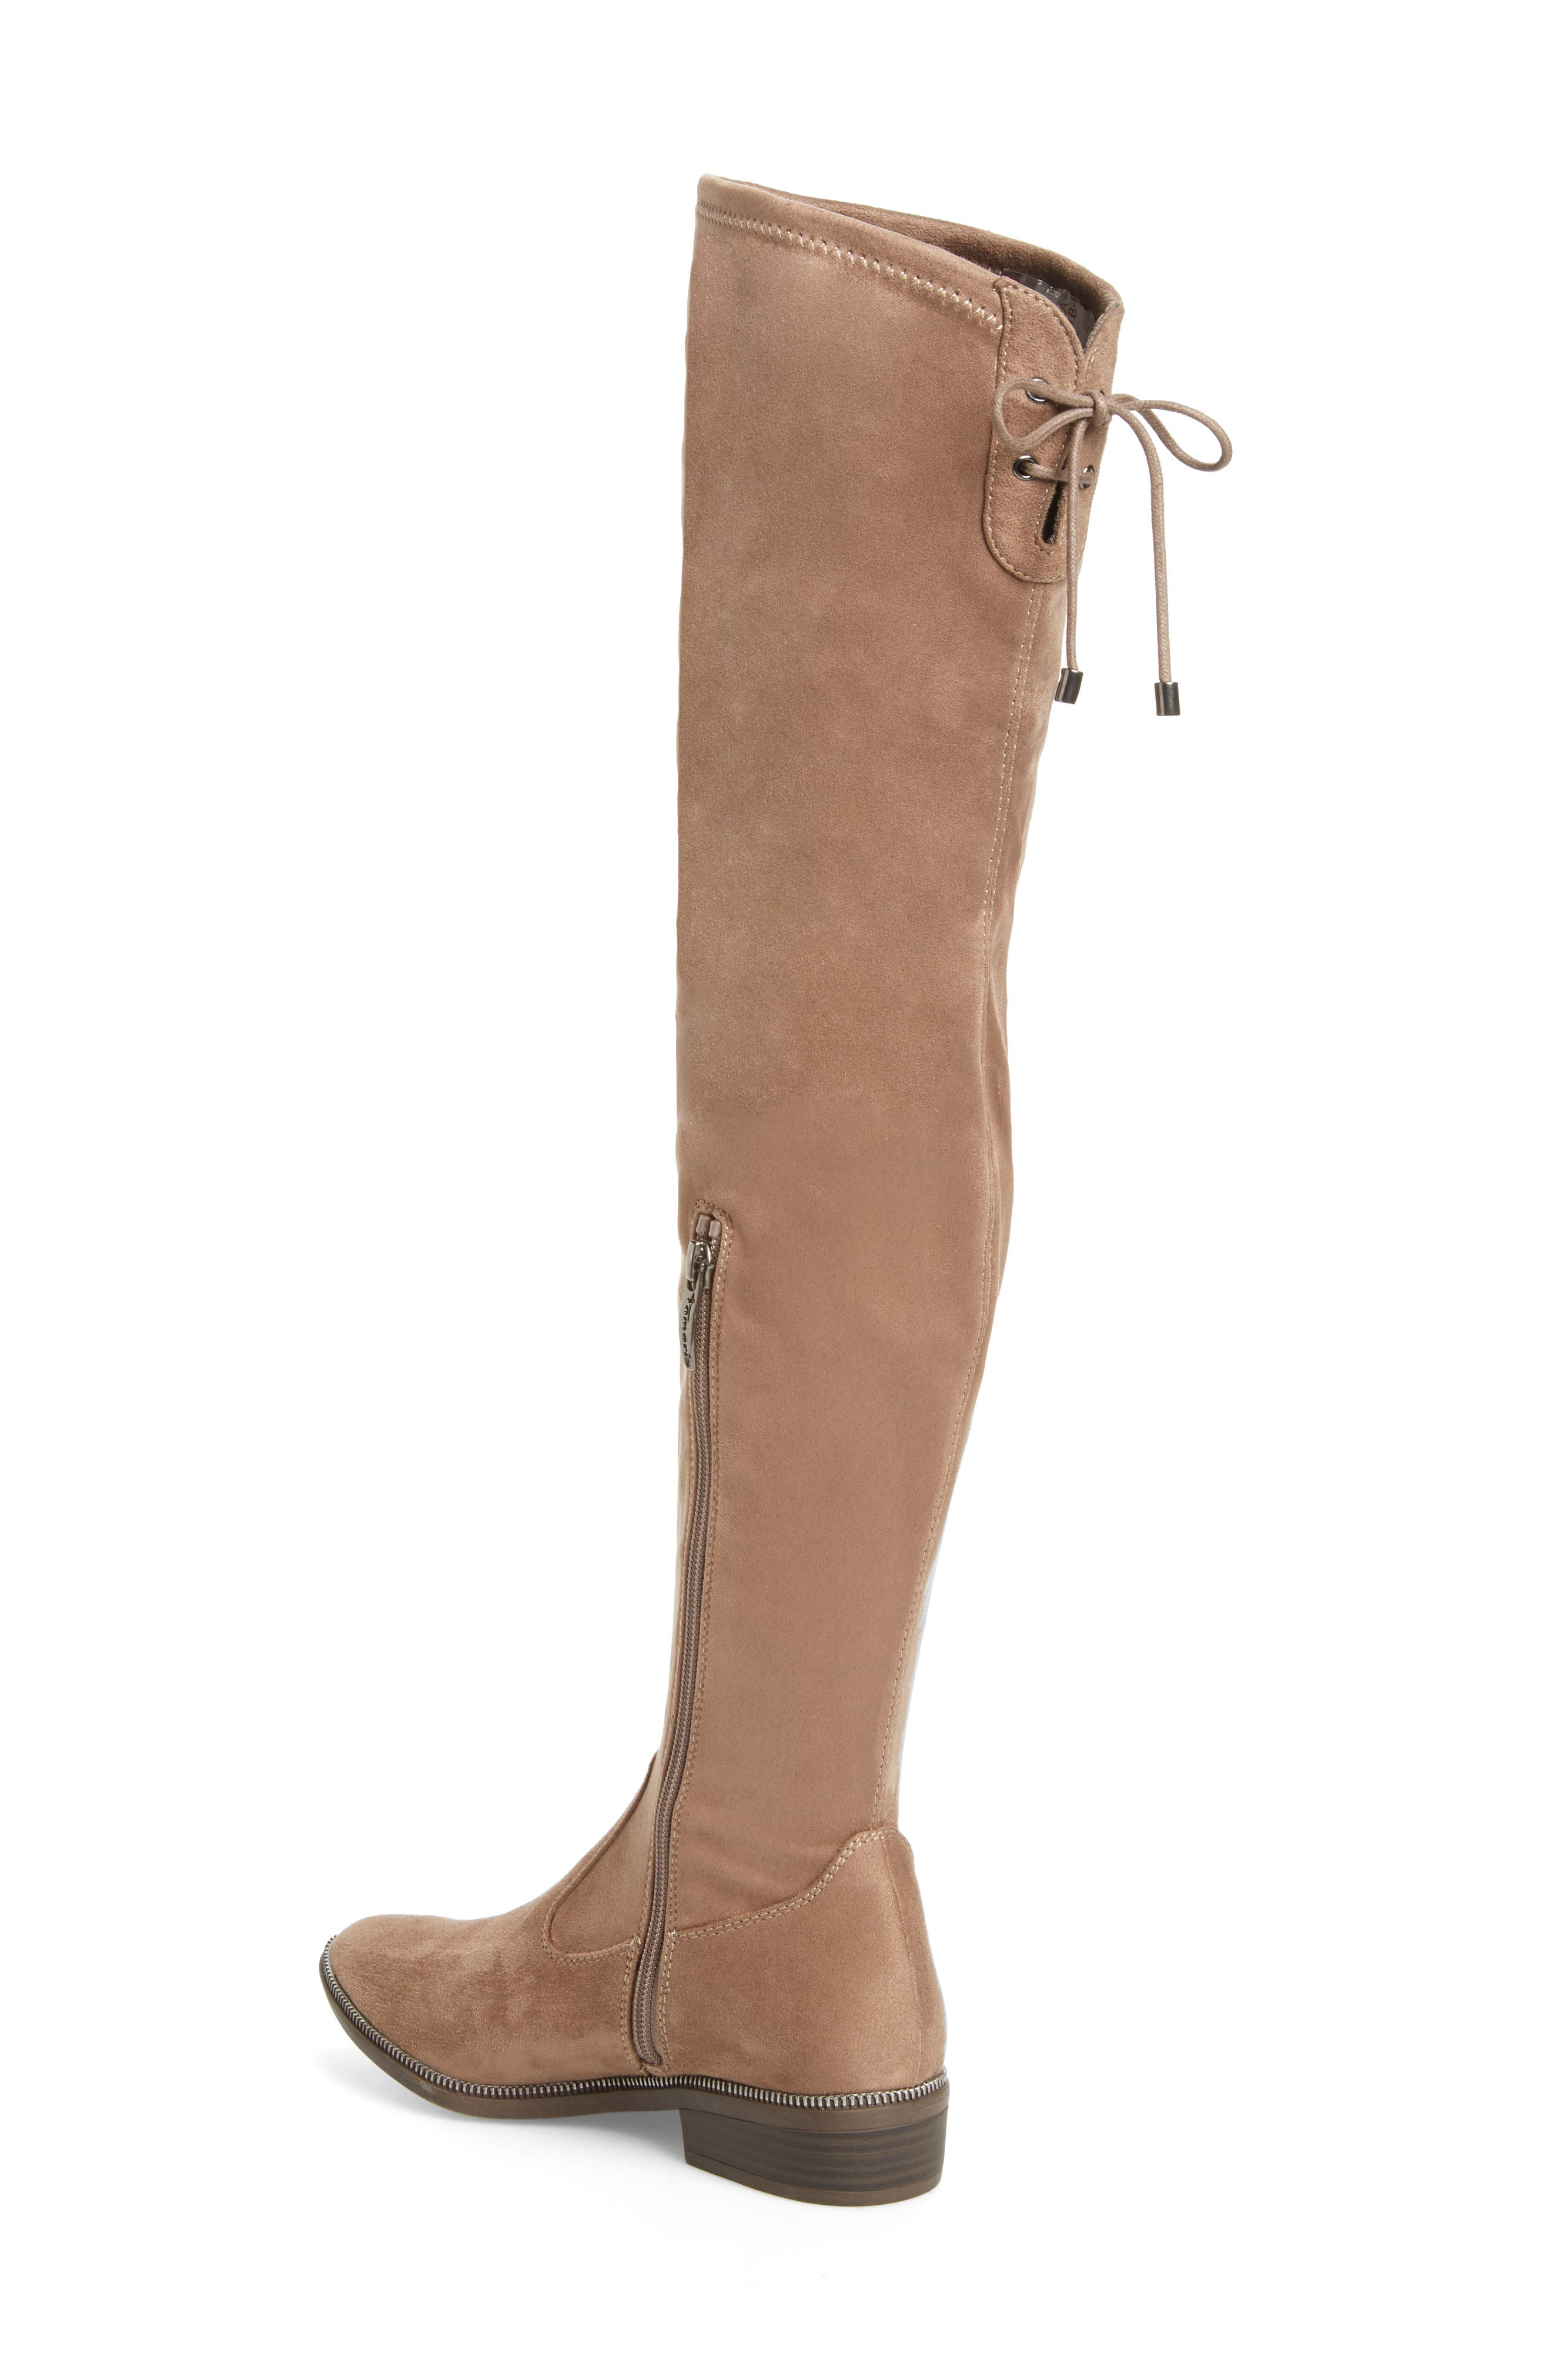 Phanie Over the Knee Stretch Boot,                             Alternate thumbnail 2, color,                             Dune Fabric